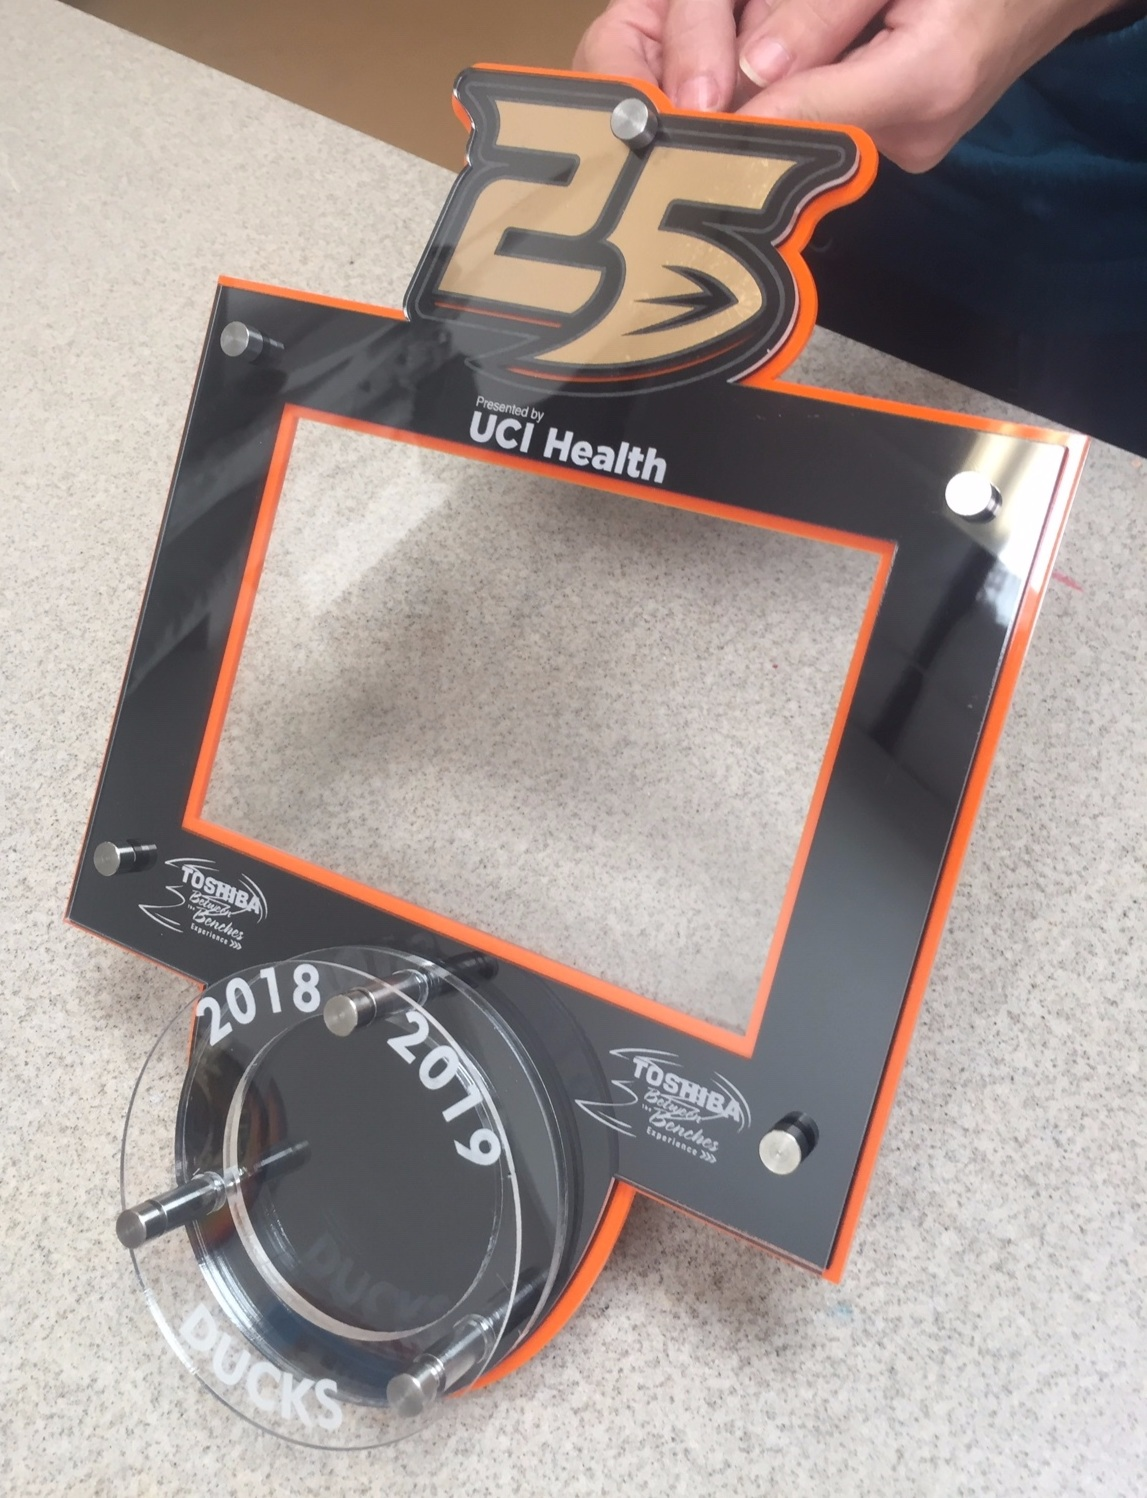 25th Anniversary 5x7 Landscape Frame holds Hockey Puck - designed and fabricated for Anaheim Ducks Puck Drop Celebration